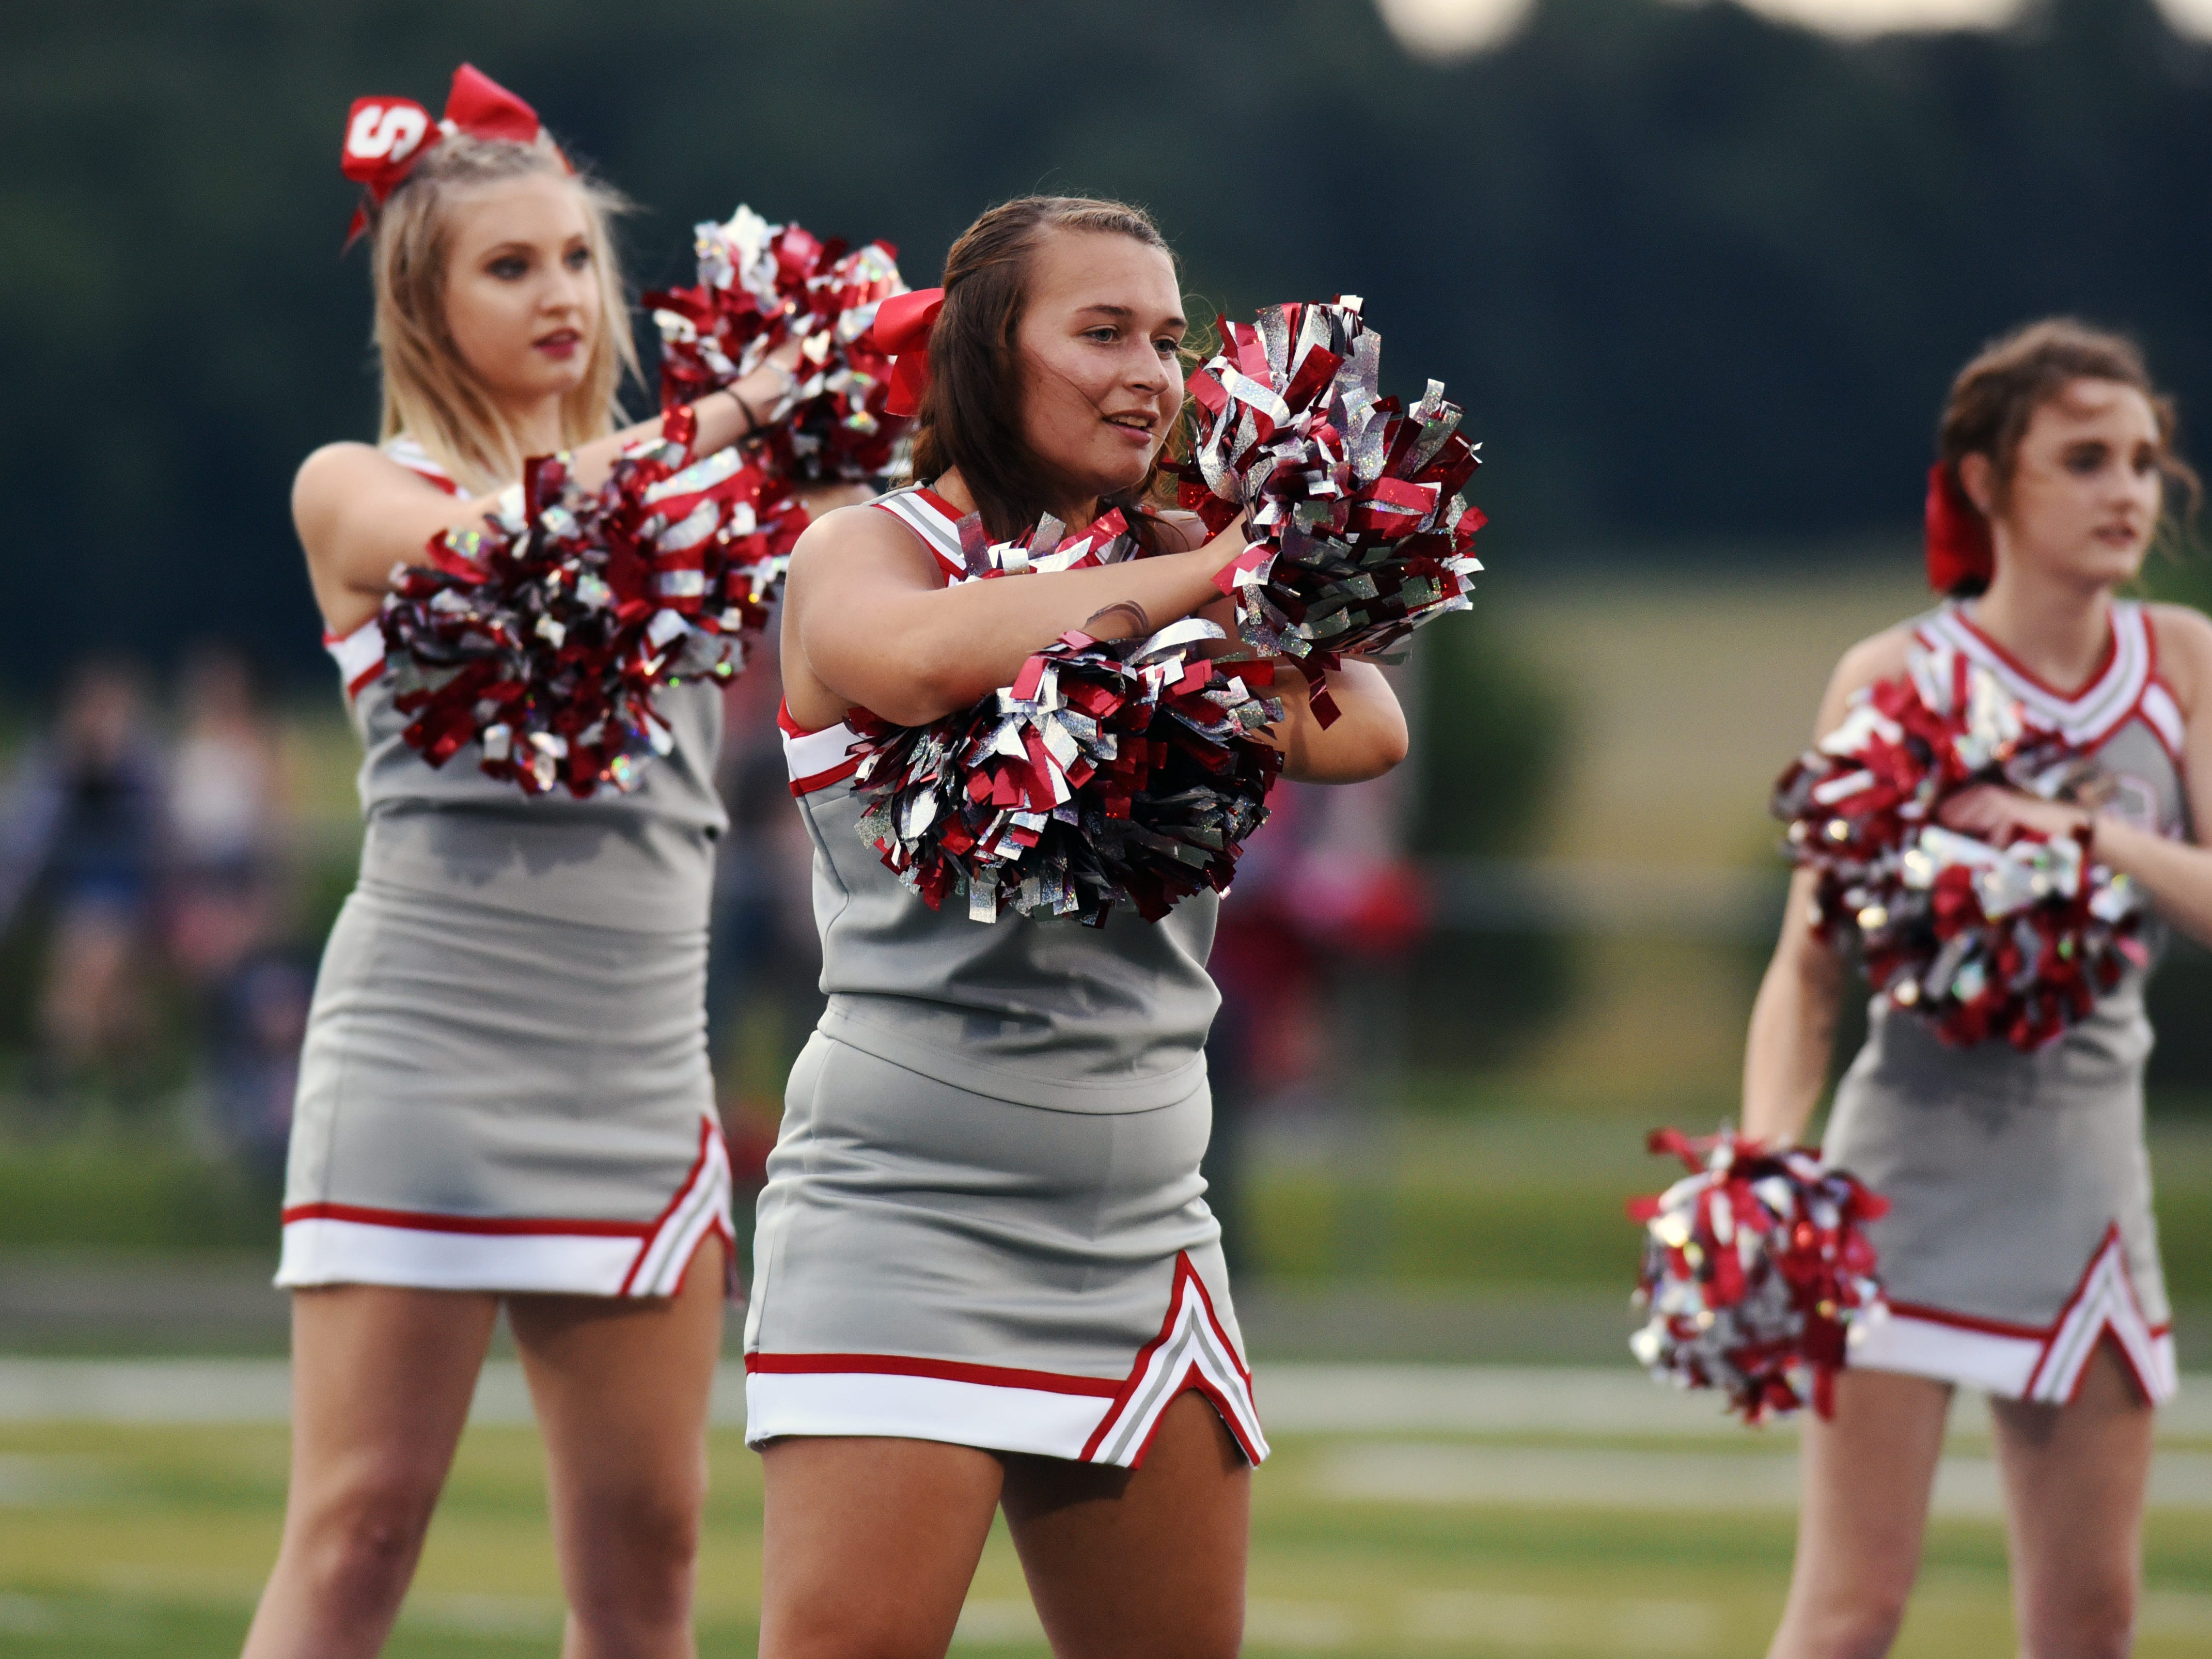 Sheridan's cheerleaders perform prior to the team's game against John Glenn on Friday night at Paul Culver Jr. Stadium. The Generals won, 37-7, to improve to 3-0.